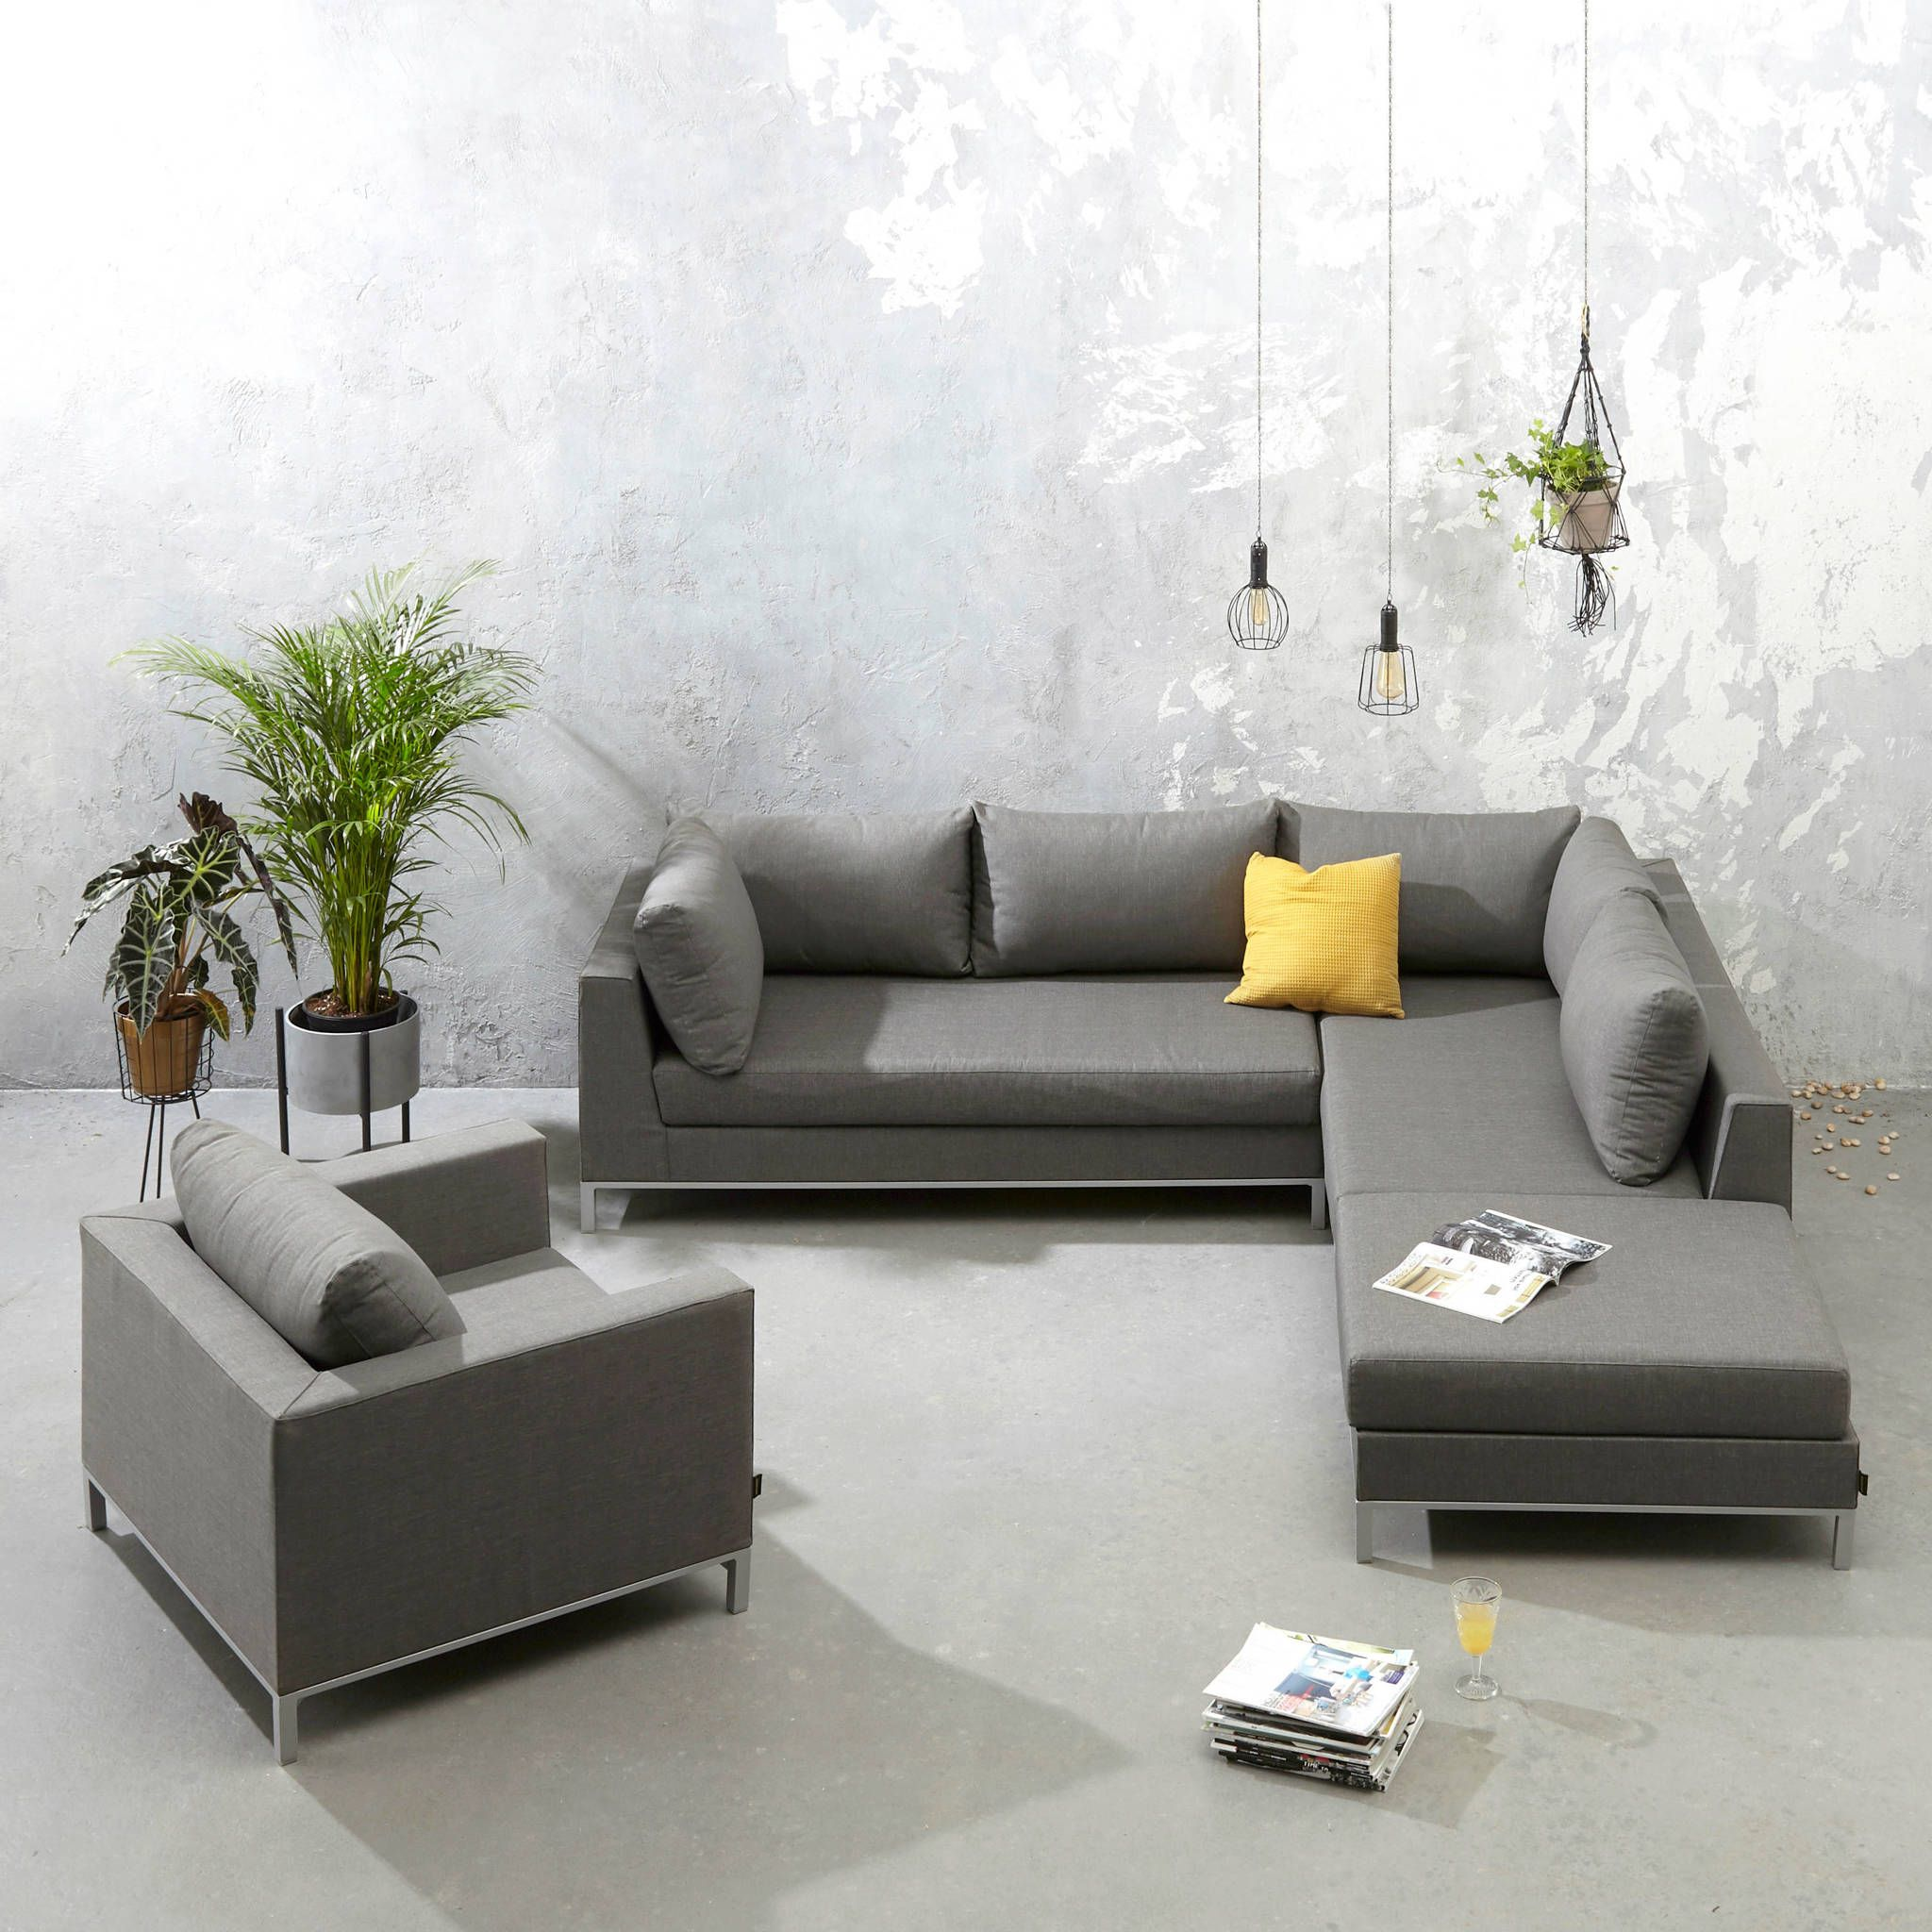 Loungeset Hoekbank Fauteuil.Exotan All Weather Loungeset Rechts Met Fauteuil In 2019